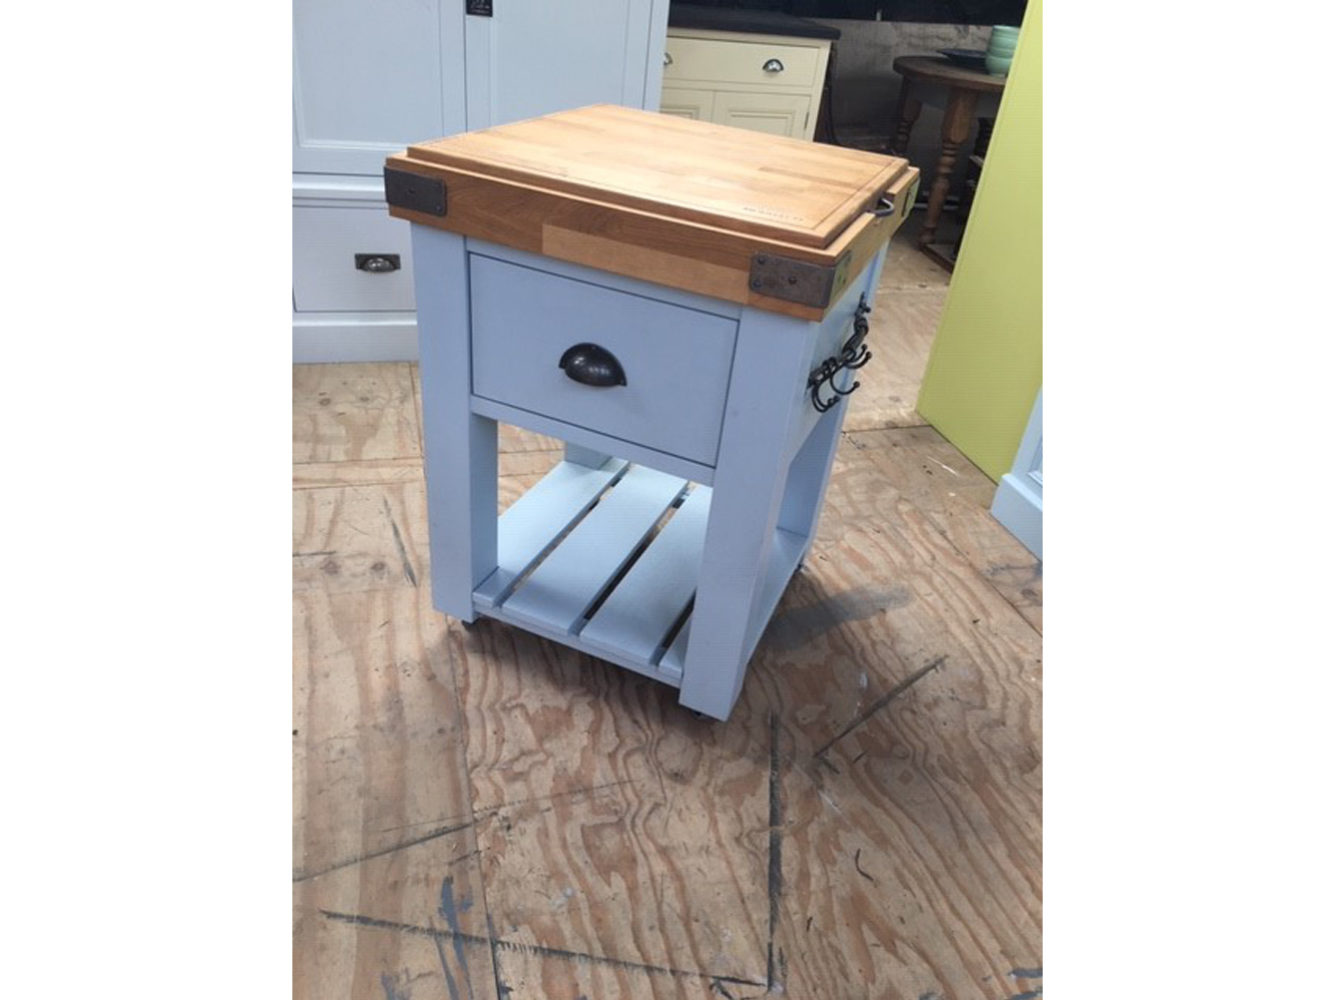 Oak Butcher's Block in the Mudd & Co factory sale 2020. Handcrafted kitchen and home furniture